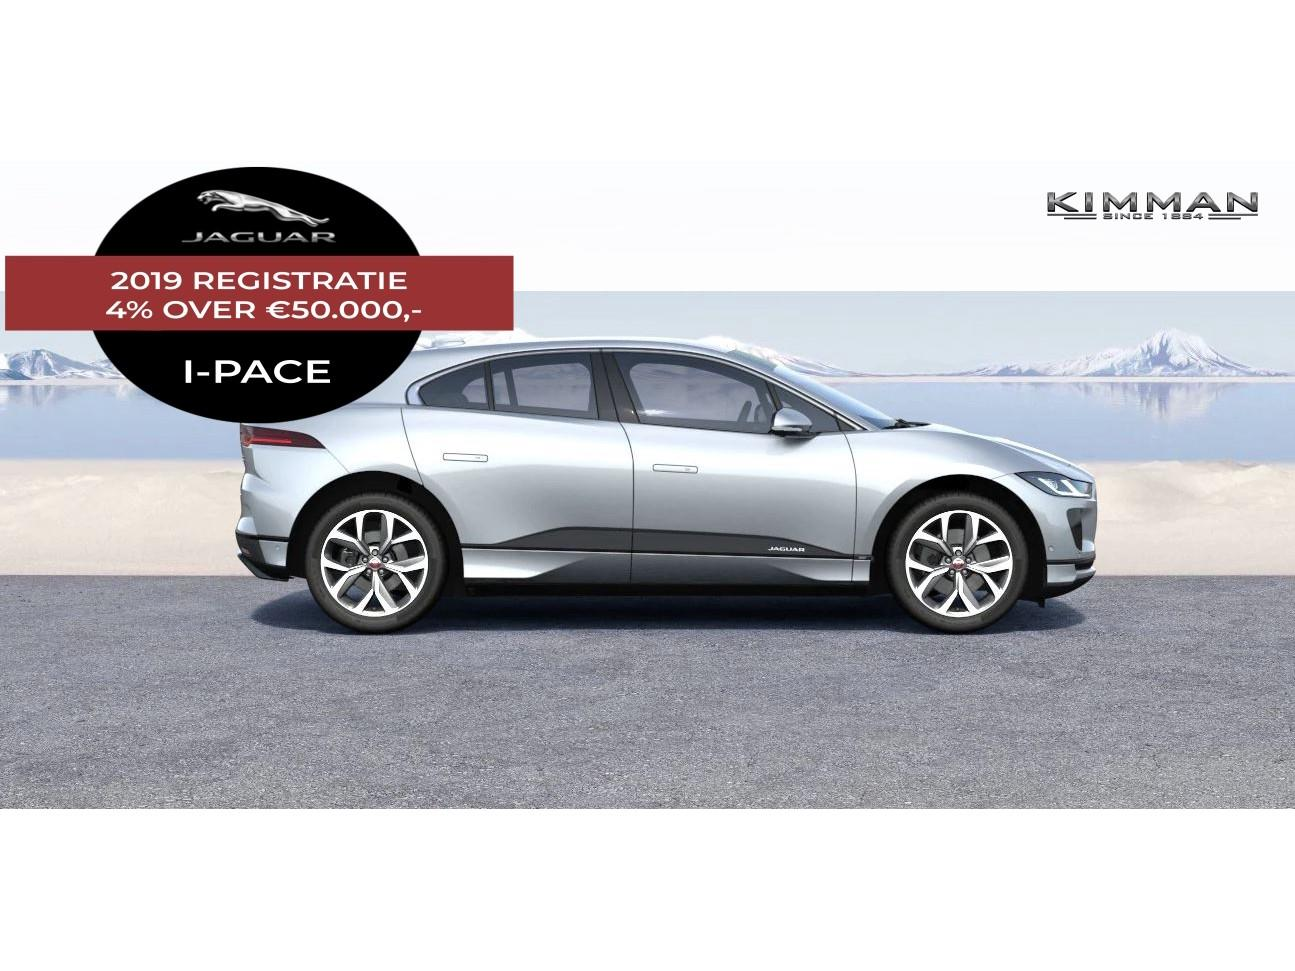 Jaguar I-pace Ev400 400pk awd business edition se 2019 registratie 4% over €50.000